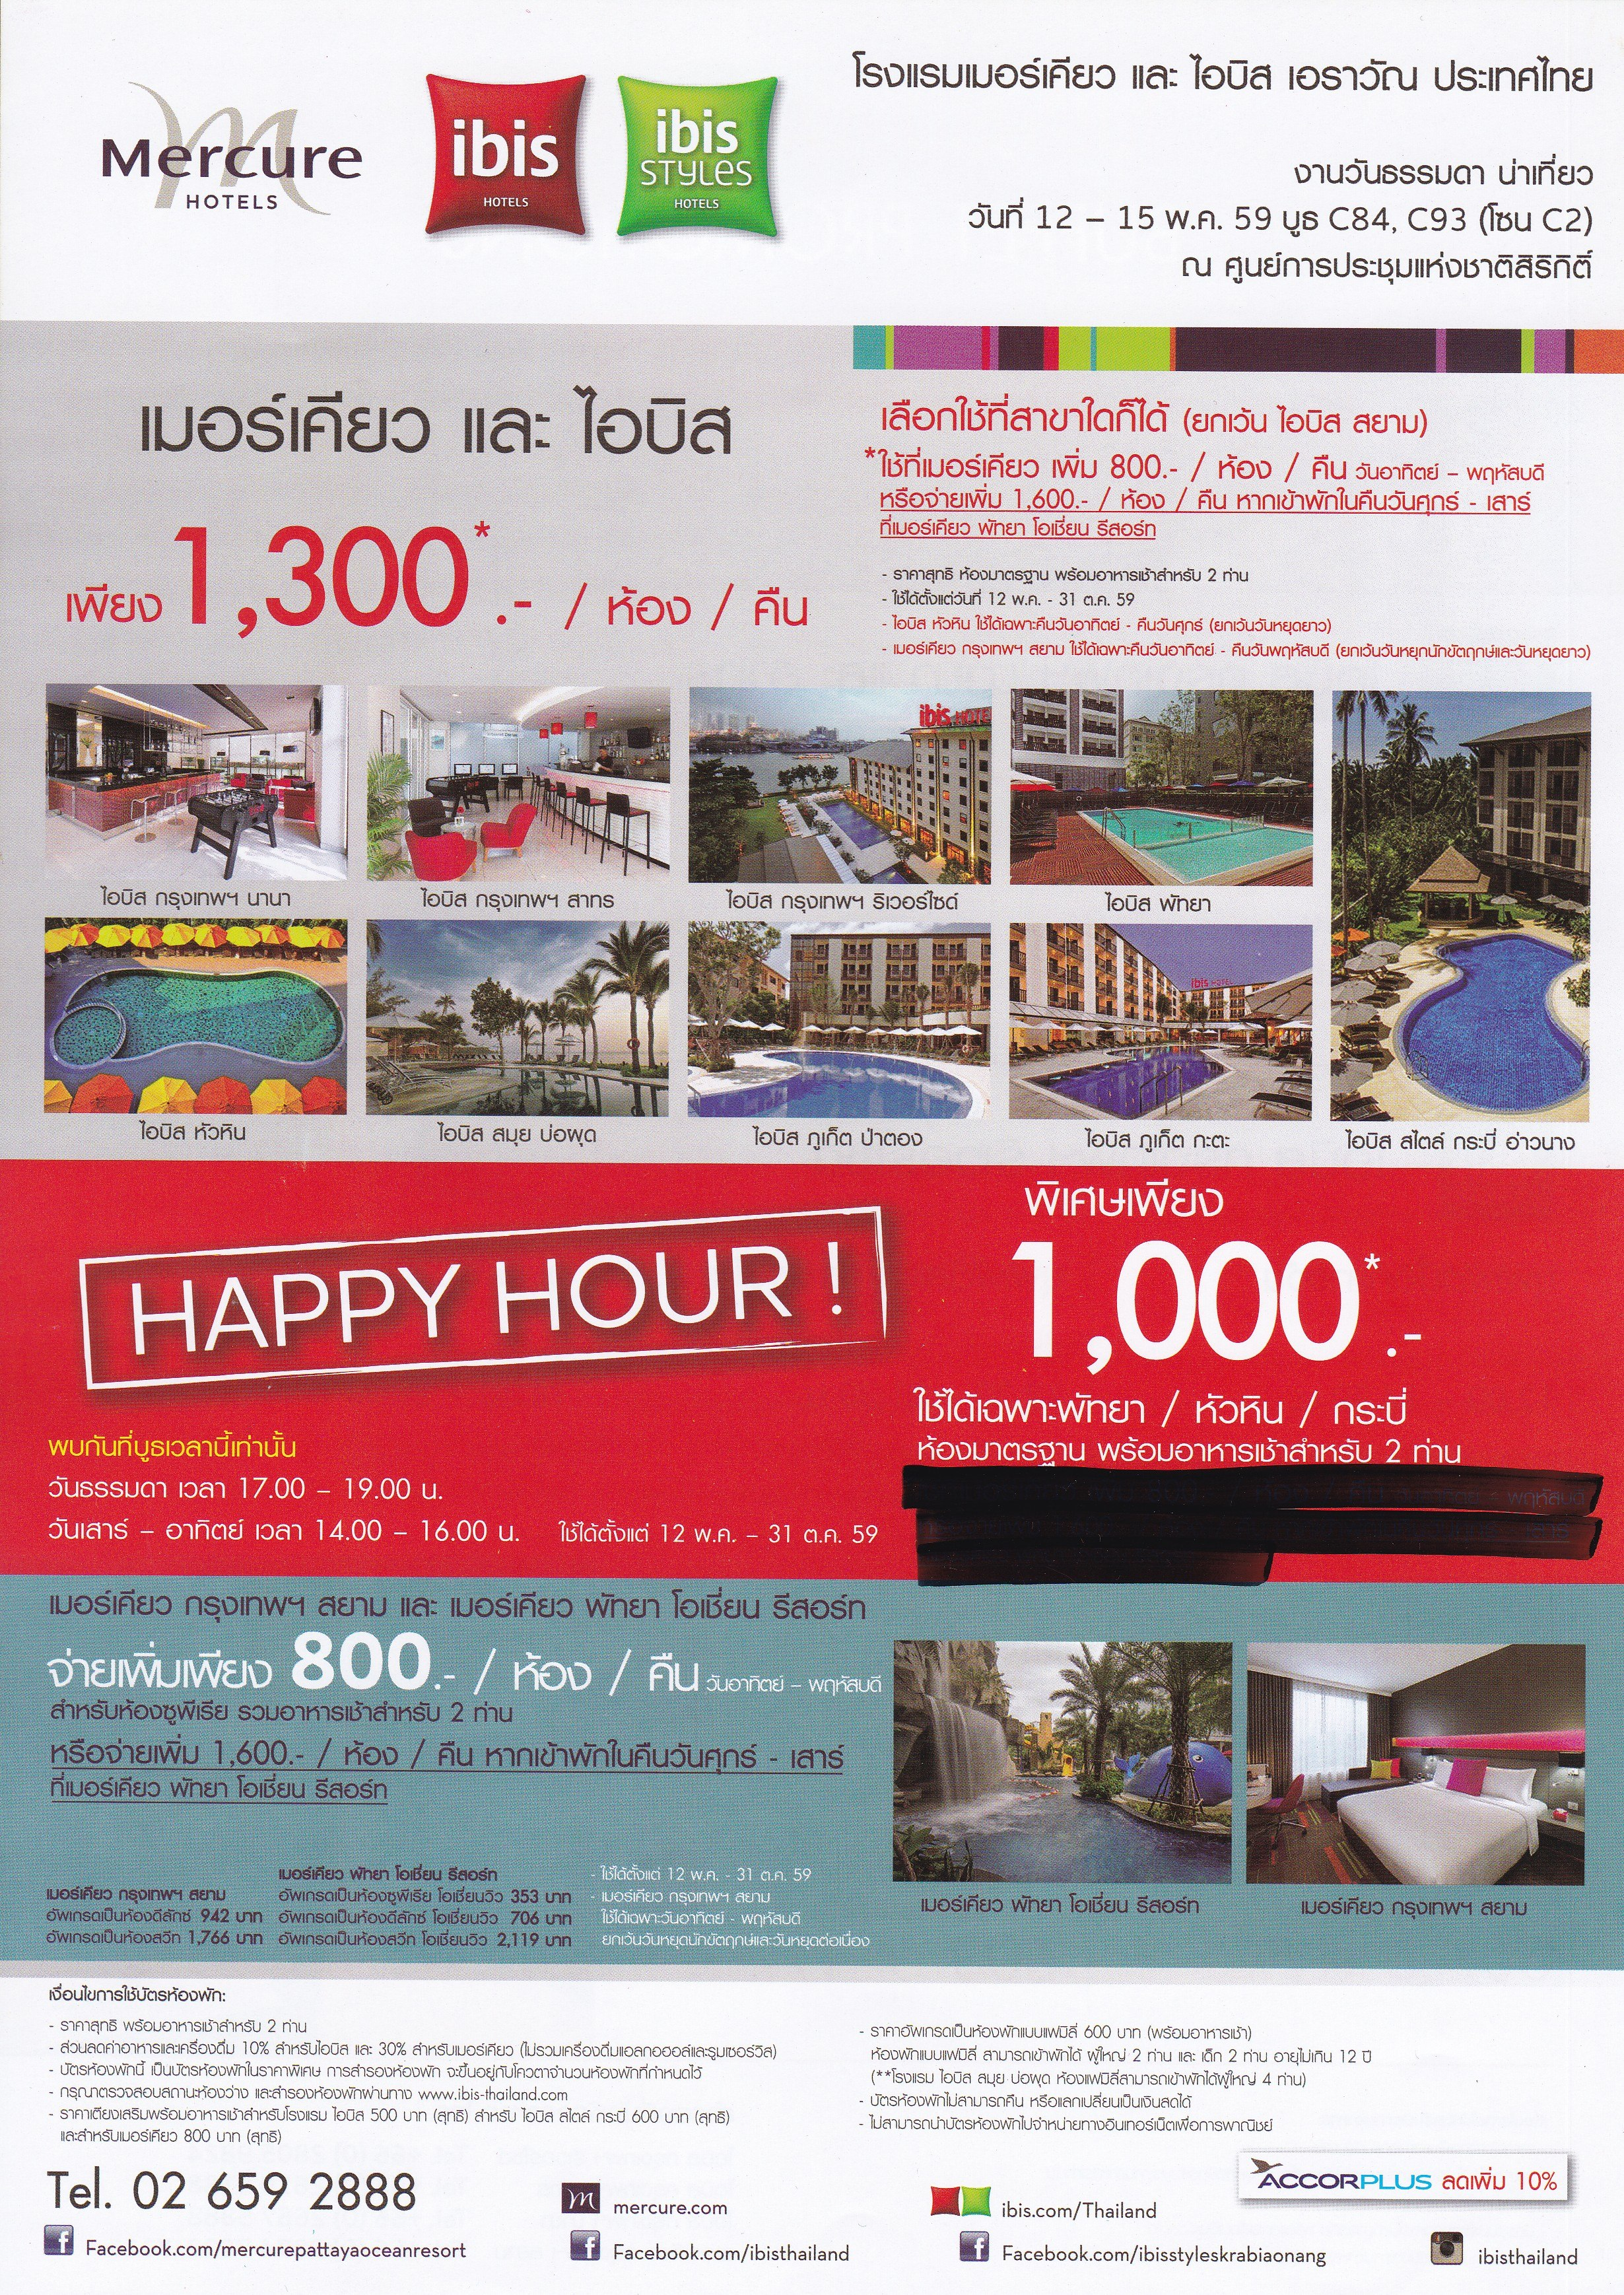 Travel-Hotel-Resort-restaurant-weekdaySpecial-Thailand-2559-1-7